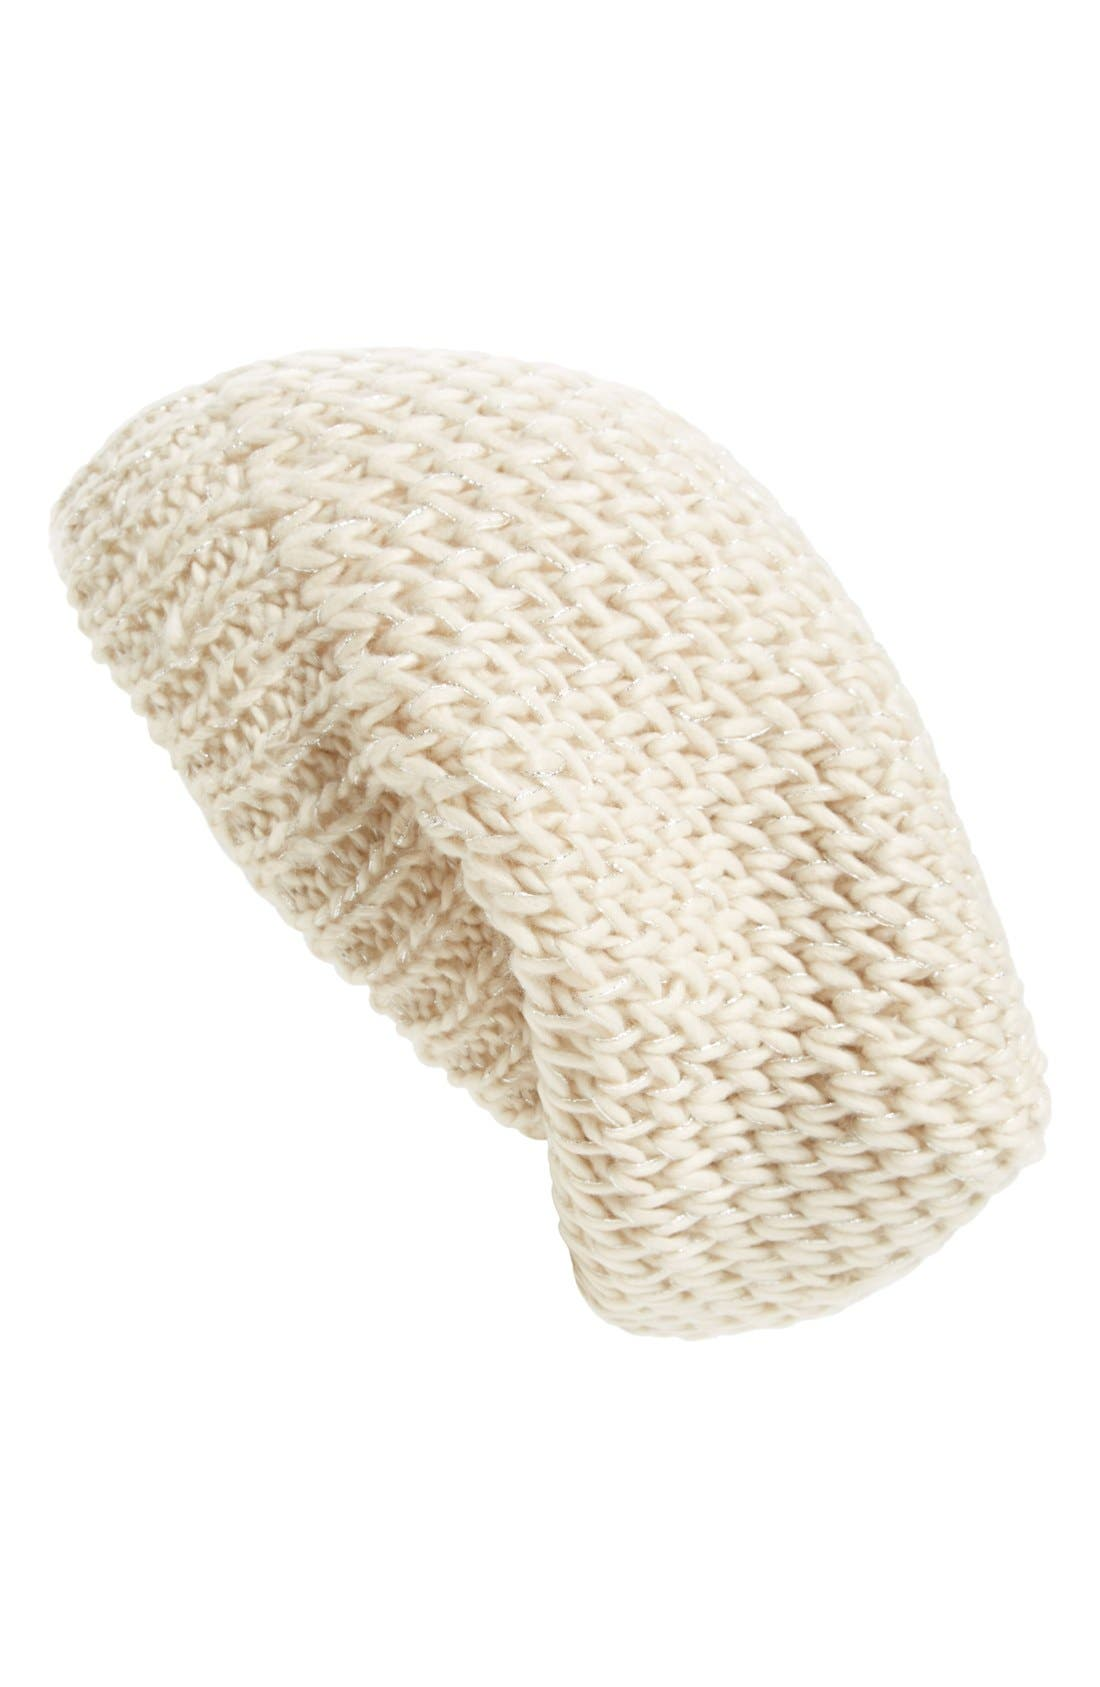 Alternate Image 1 Selected - Sole Society Shimmer Knit Slouchy Beanie